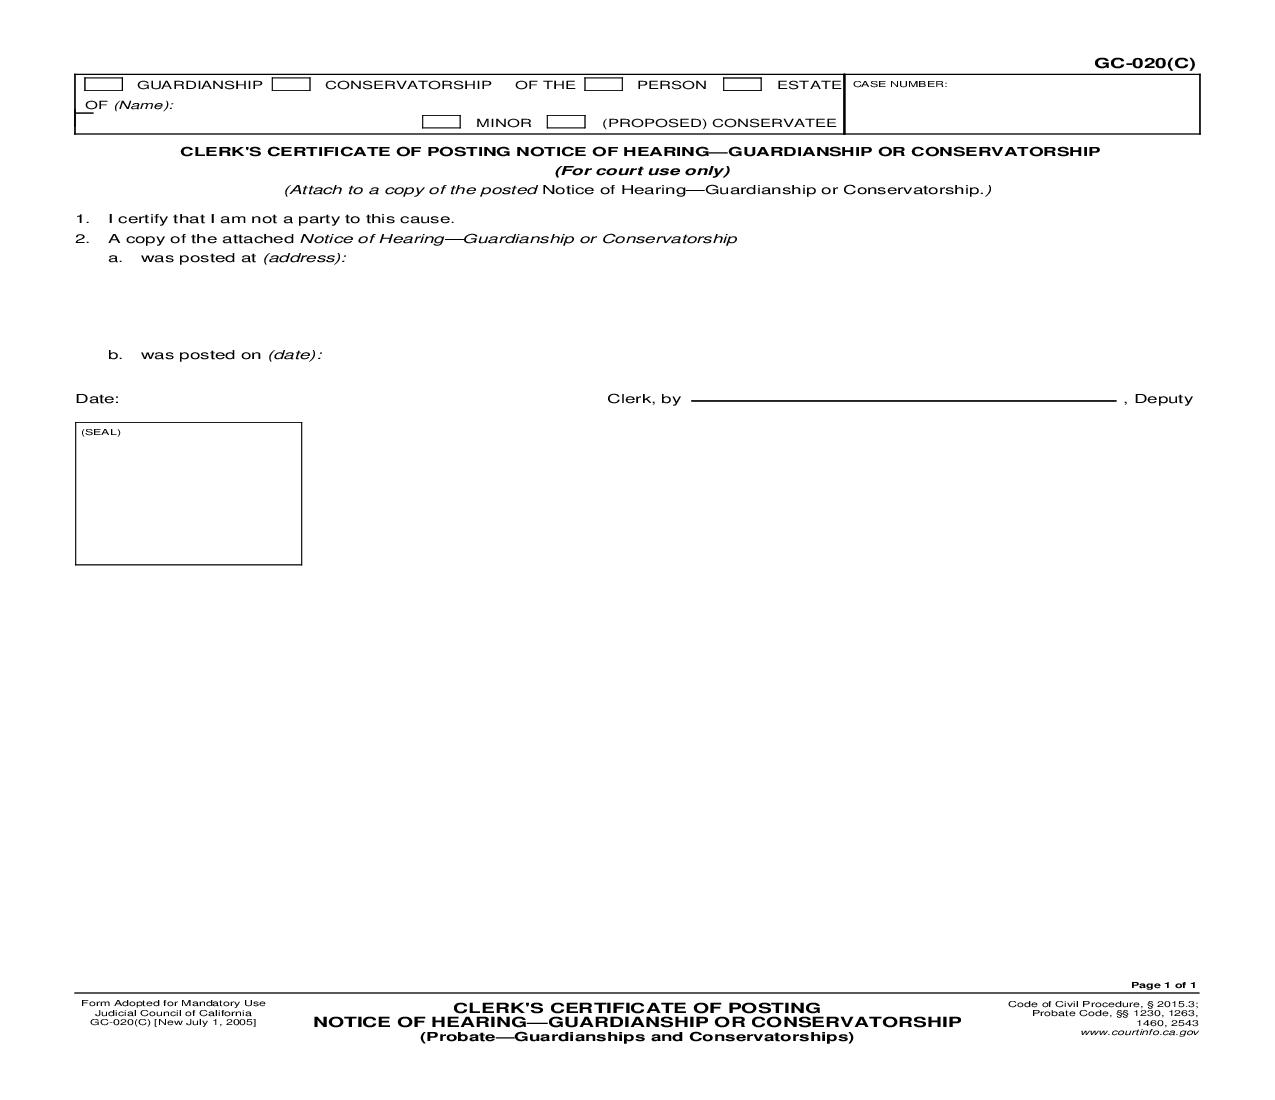 Clerks Certificate Of Posting Notice Of Hearing-Guardianship Or Conservatorship (Probate-Guardianships) {GC-020(C)} | Pdf Fpdf Doc Docx | California